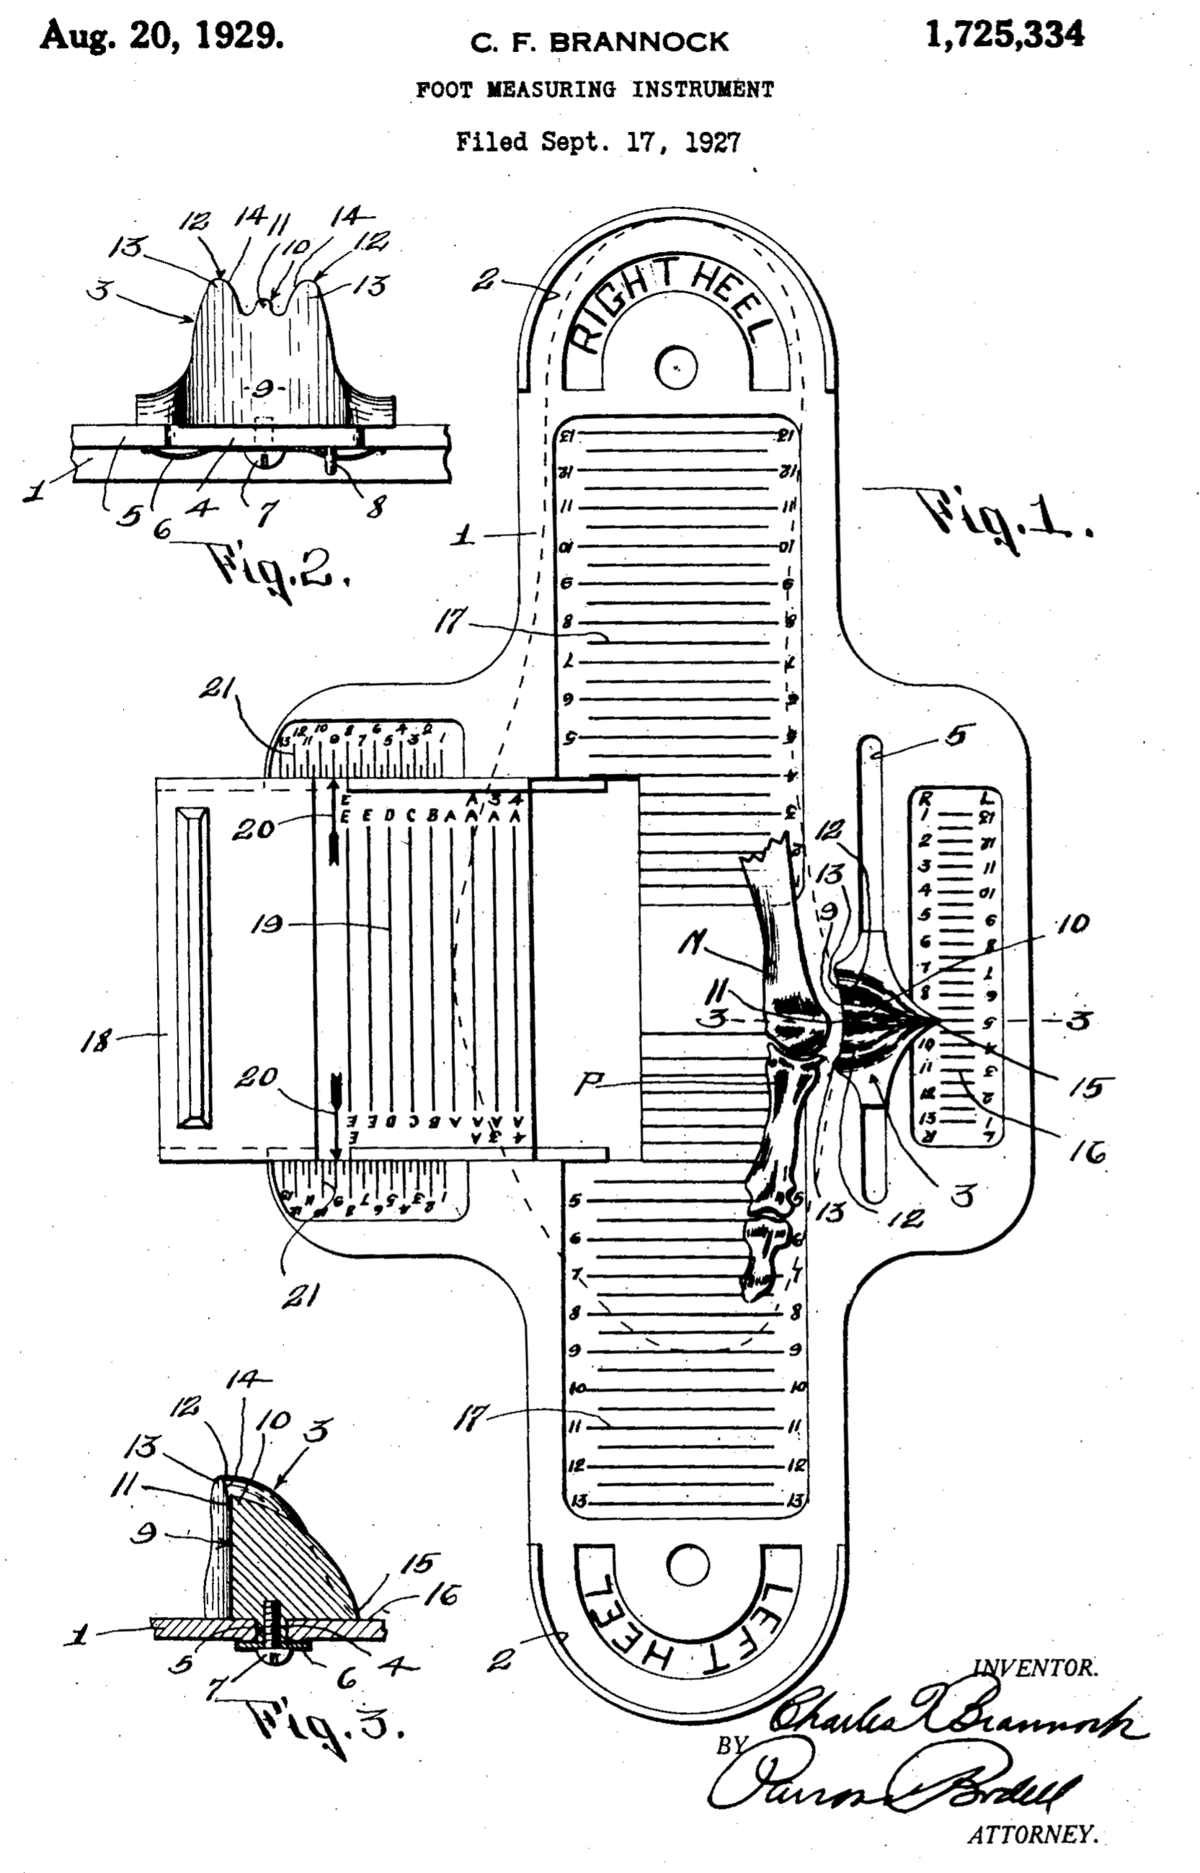 Impeccable image in brannock device printable